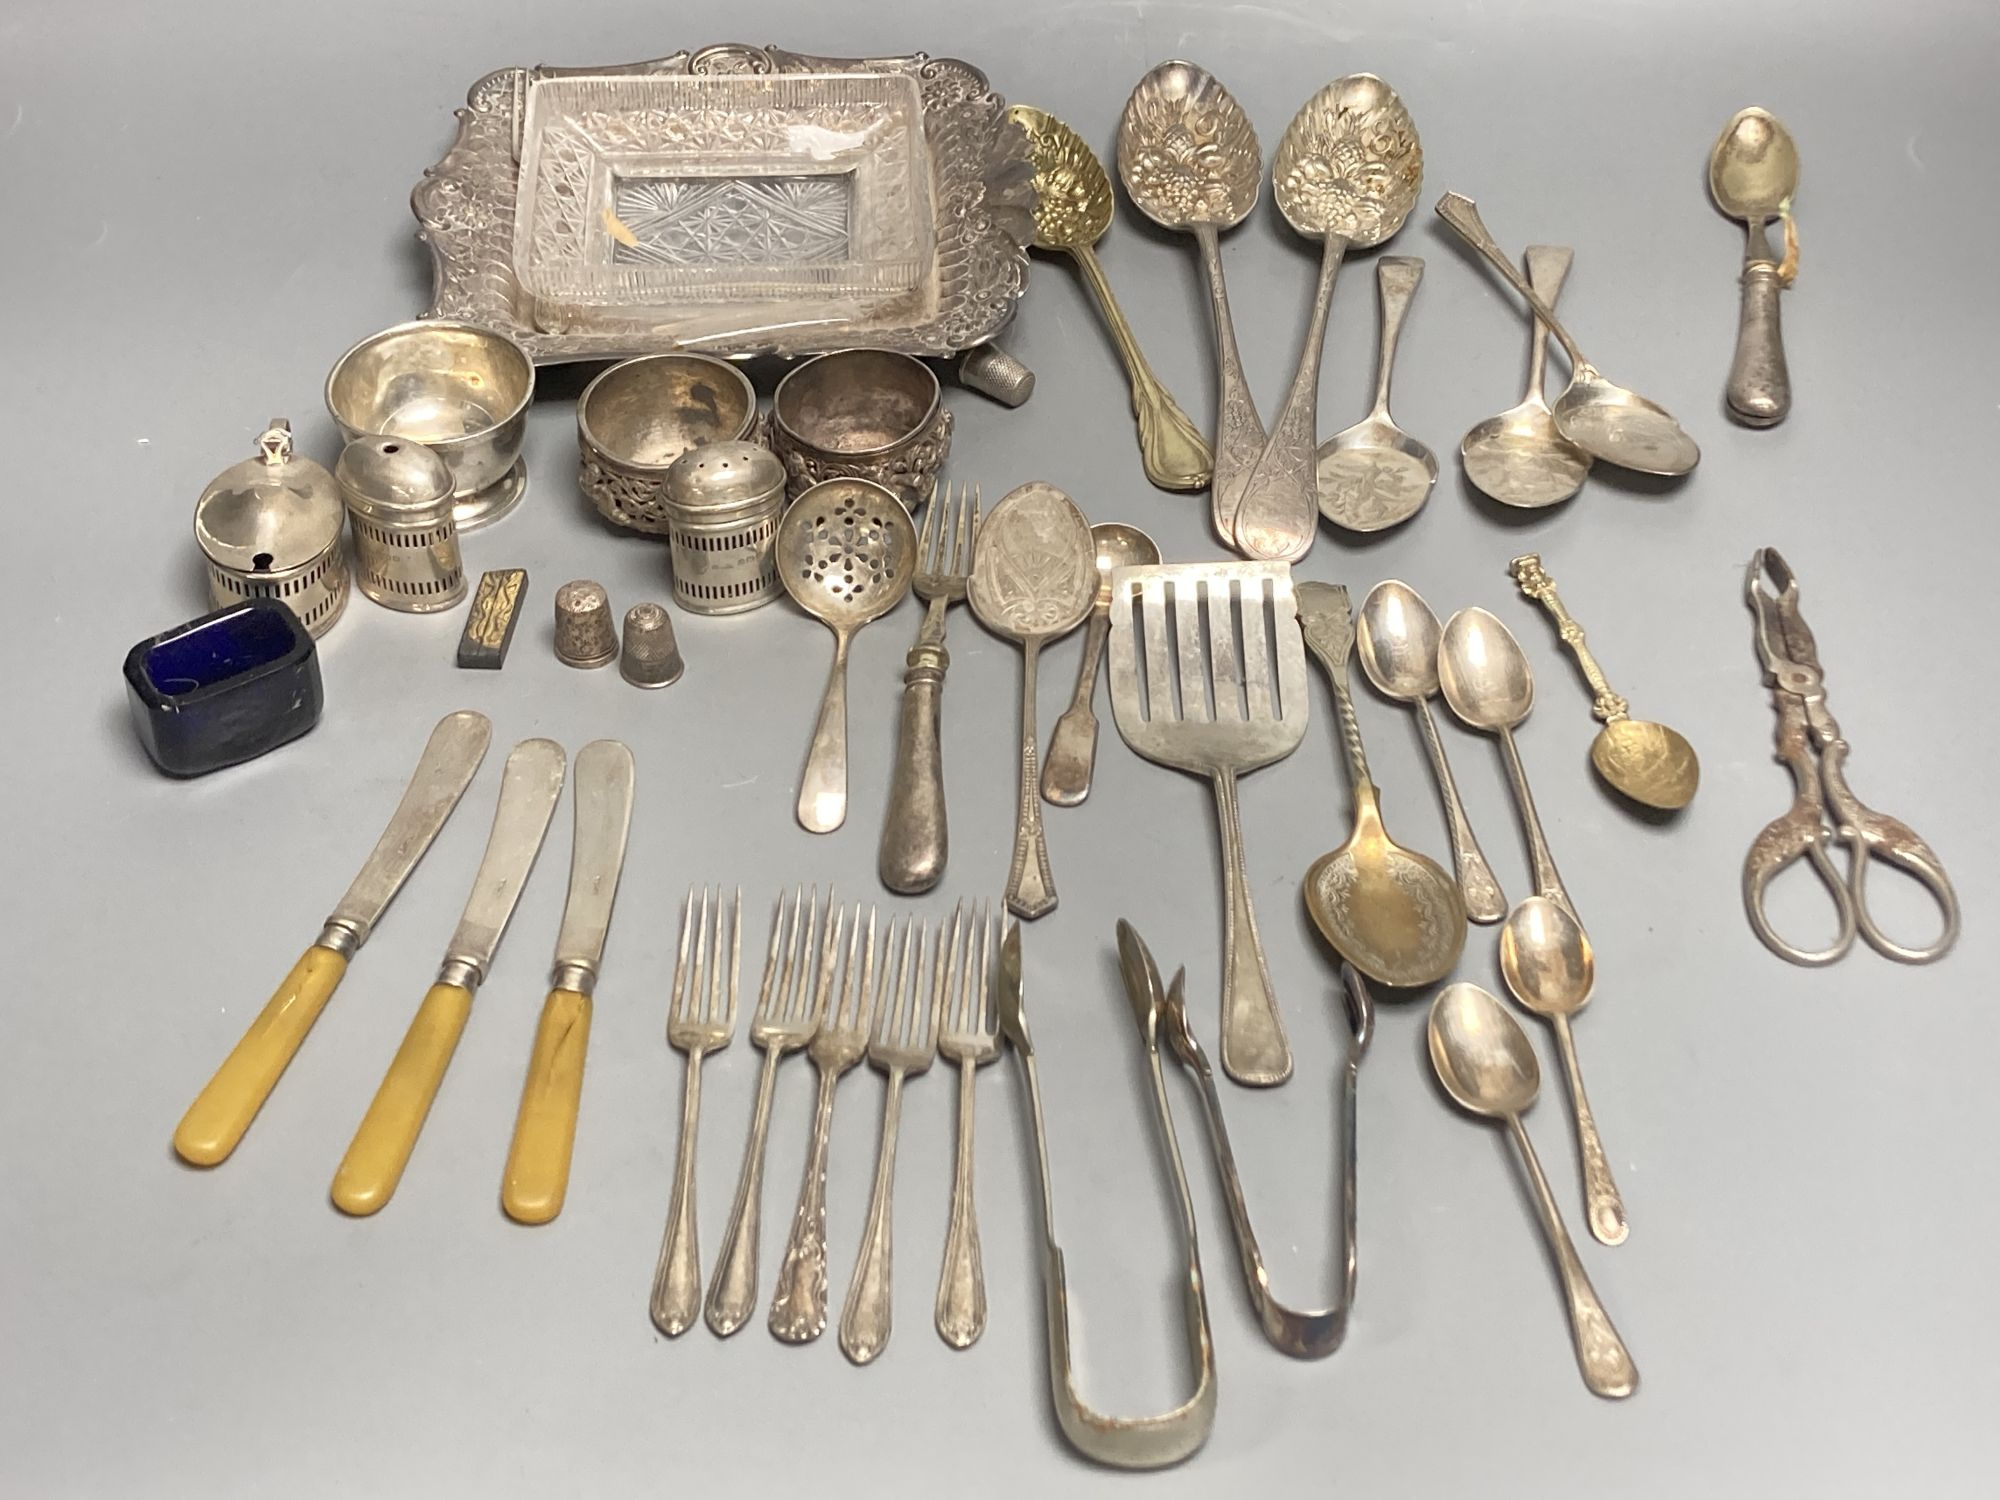 Four silver condiments, two silver thimbles, two Indian? salts and assorted plated flatware etc. - Image 2 of 6